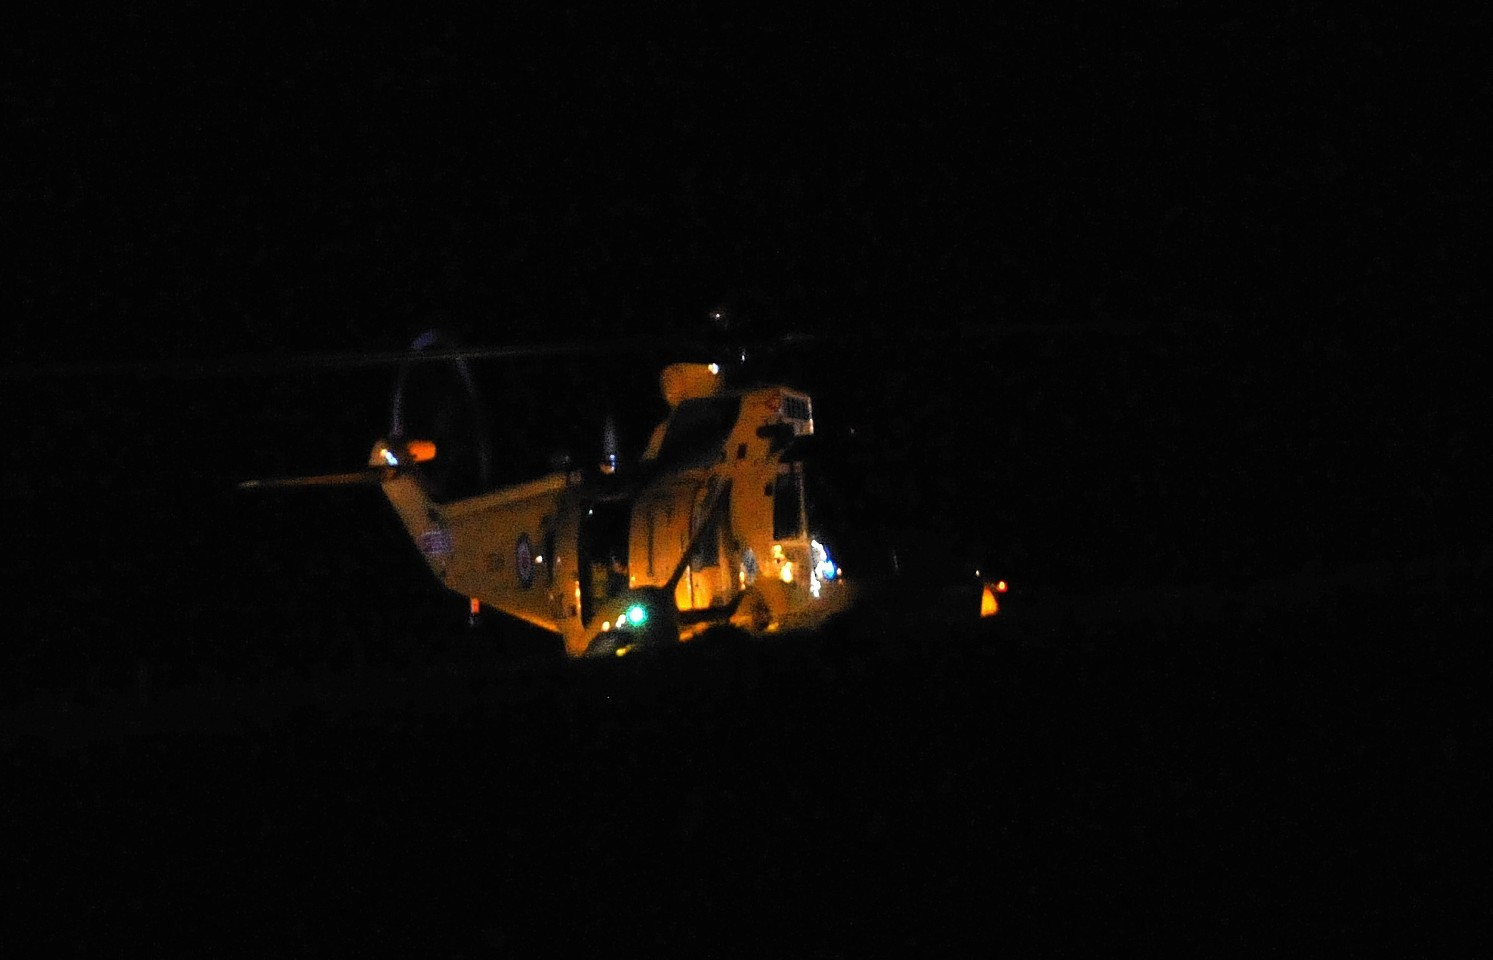 The RAF Sea King helicopter leaving to fly a patient to ARI. Credit: Duncan Brown.